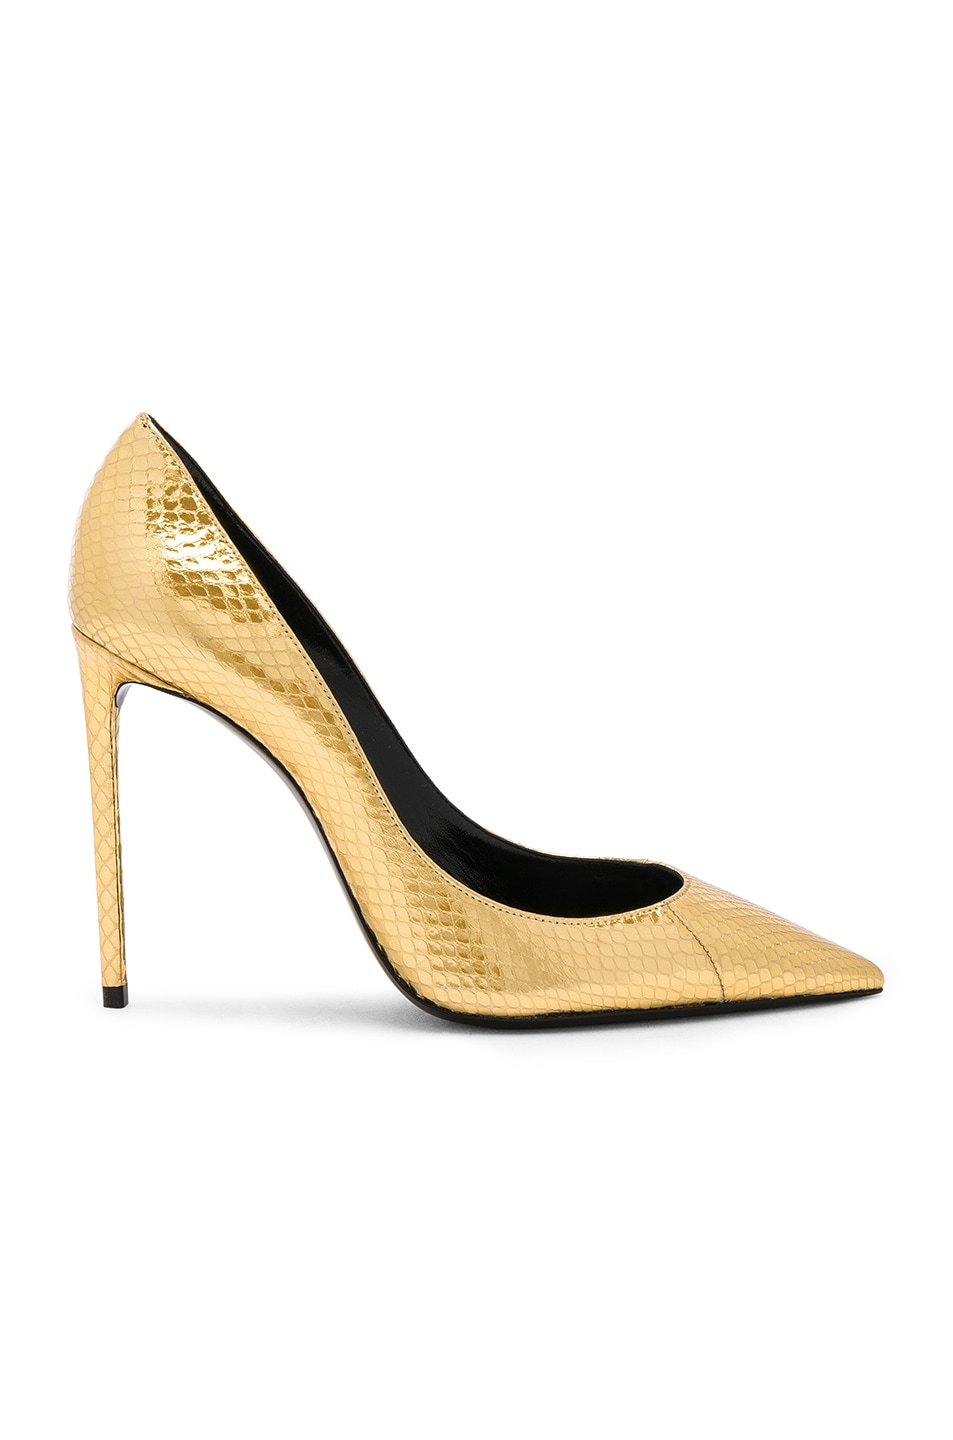 Image 1 of Saint Laurent Metallic Snakeskin Zoe Pumps in Gold